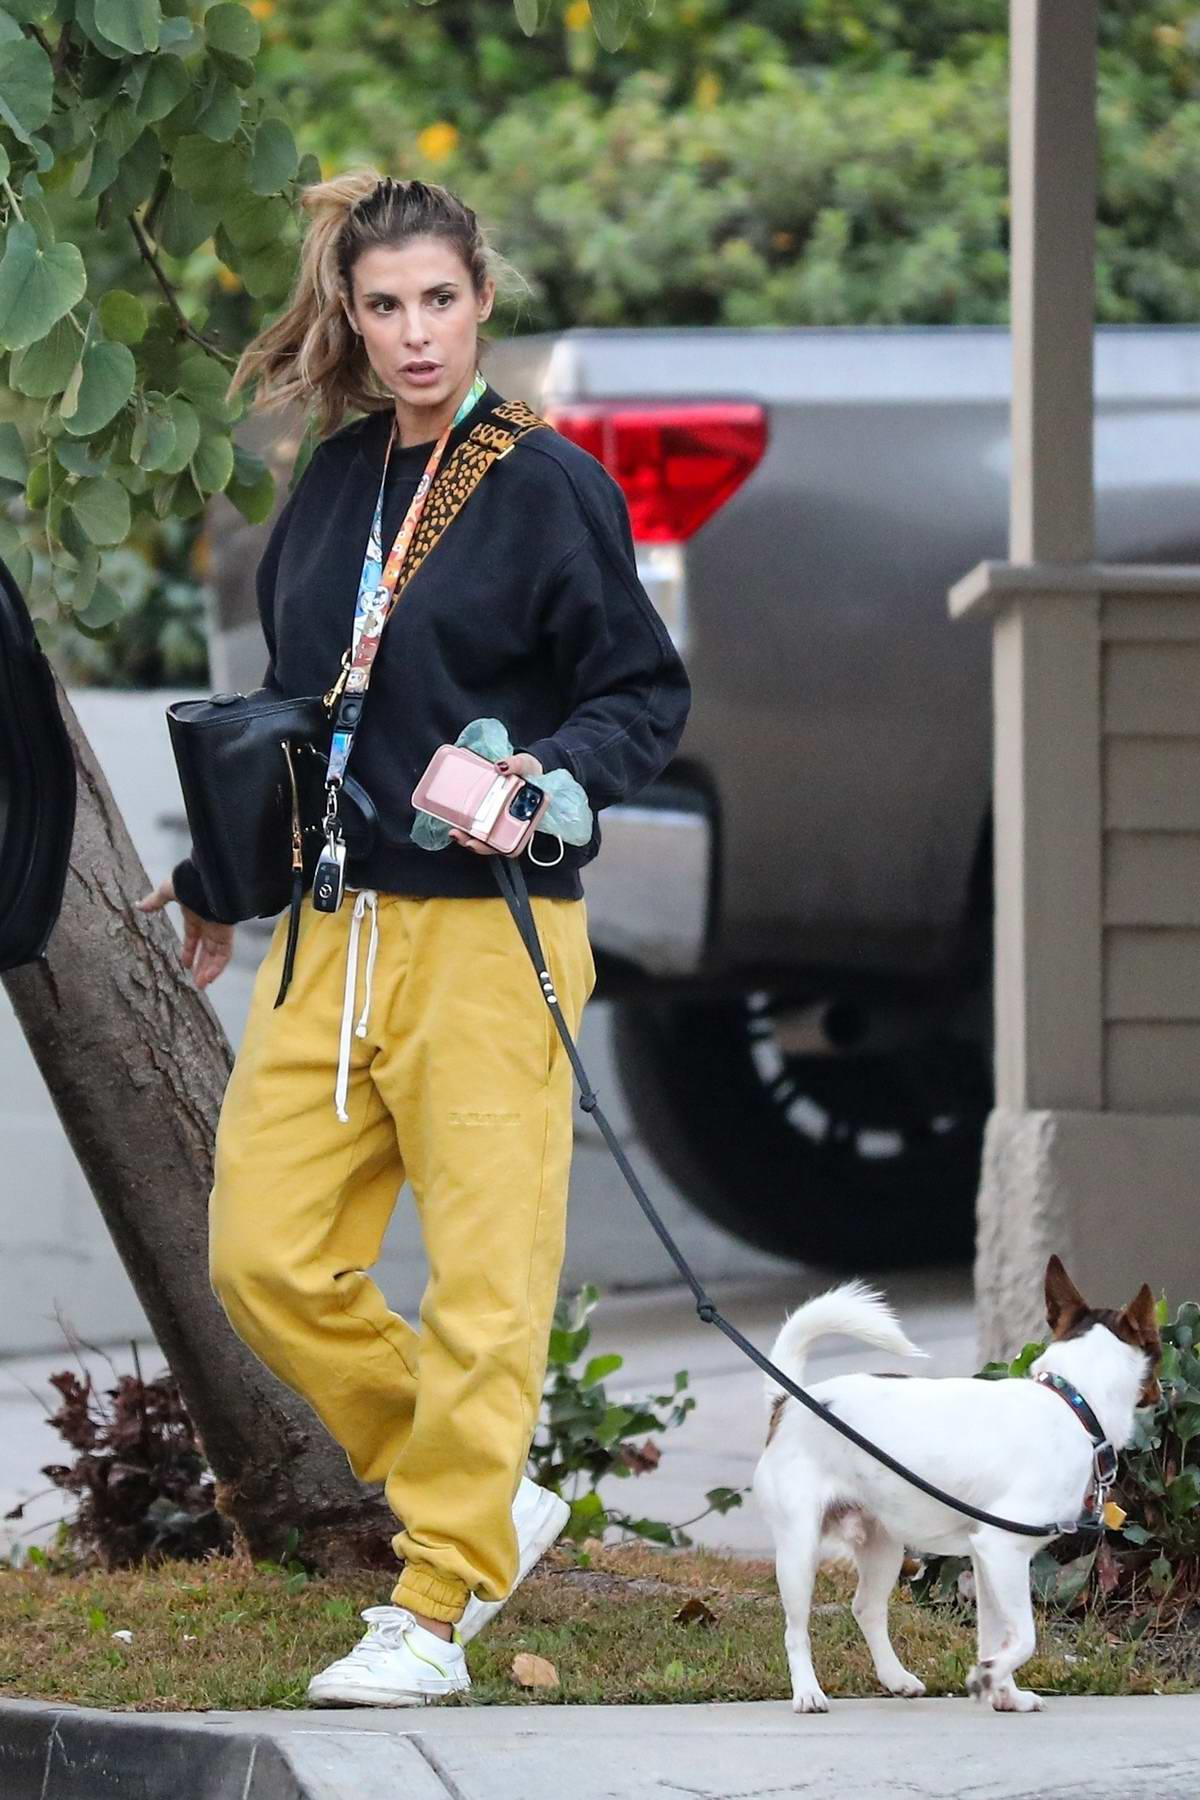 Elisabetta Canalis picks up after her pooch as she takes her daughter and their dog for a walk in Los Angeles